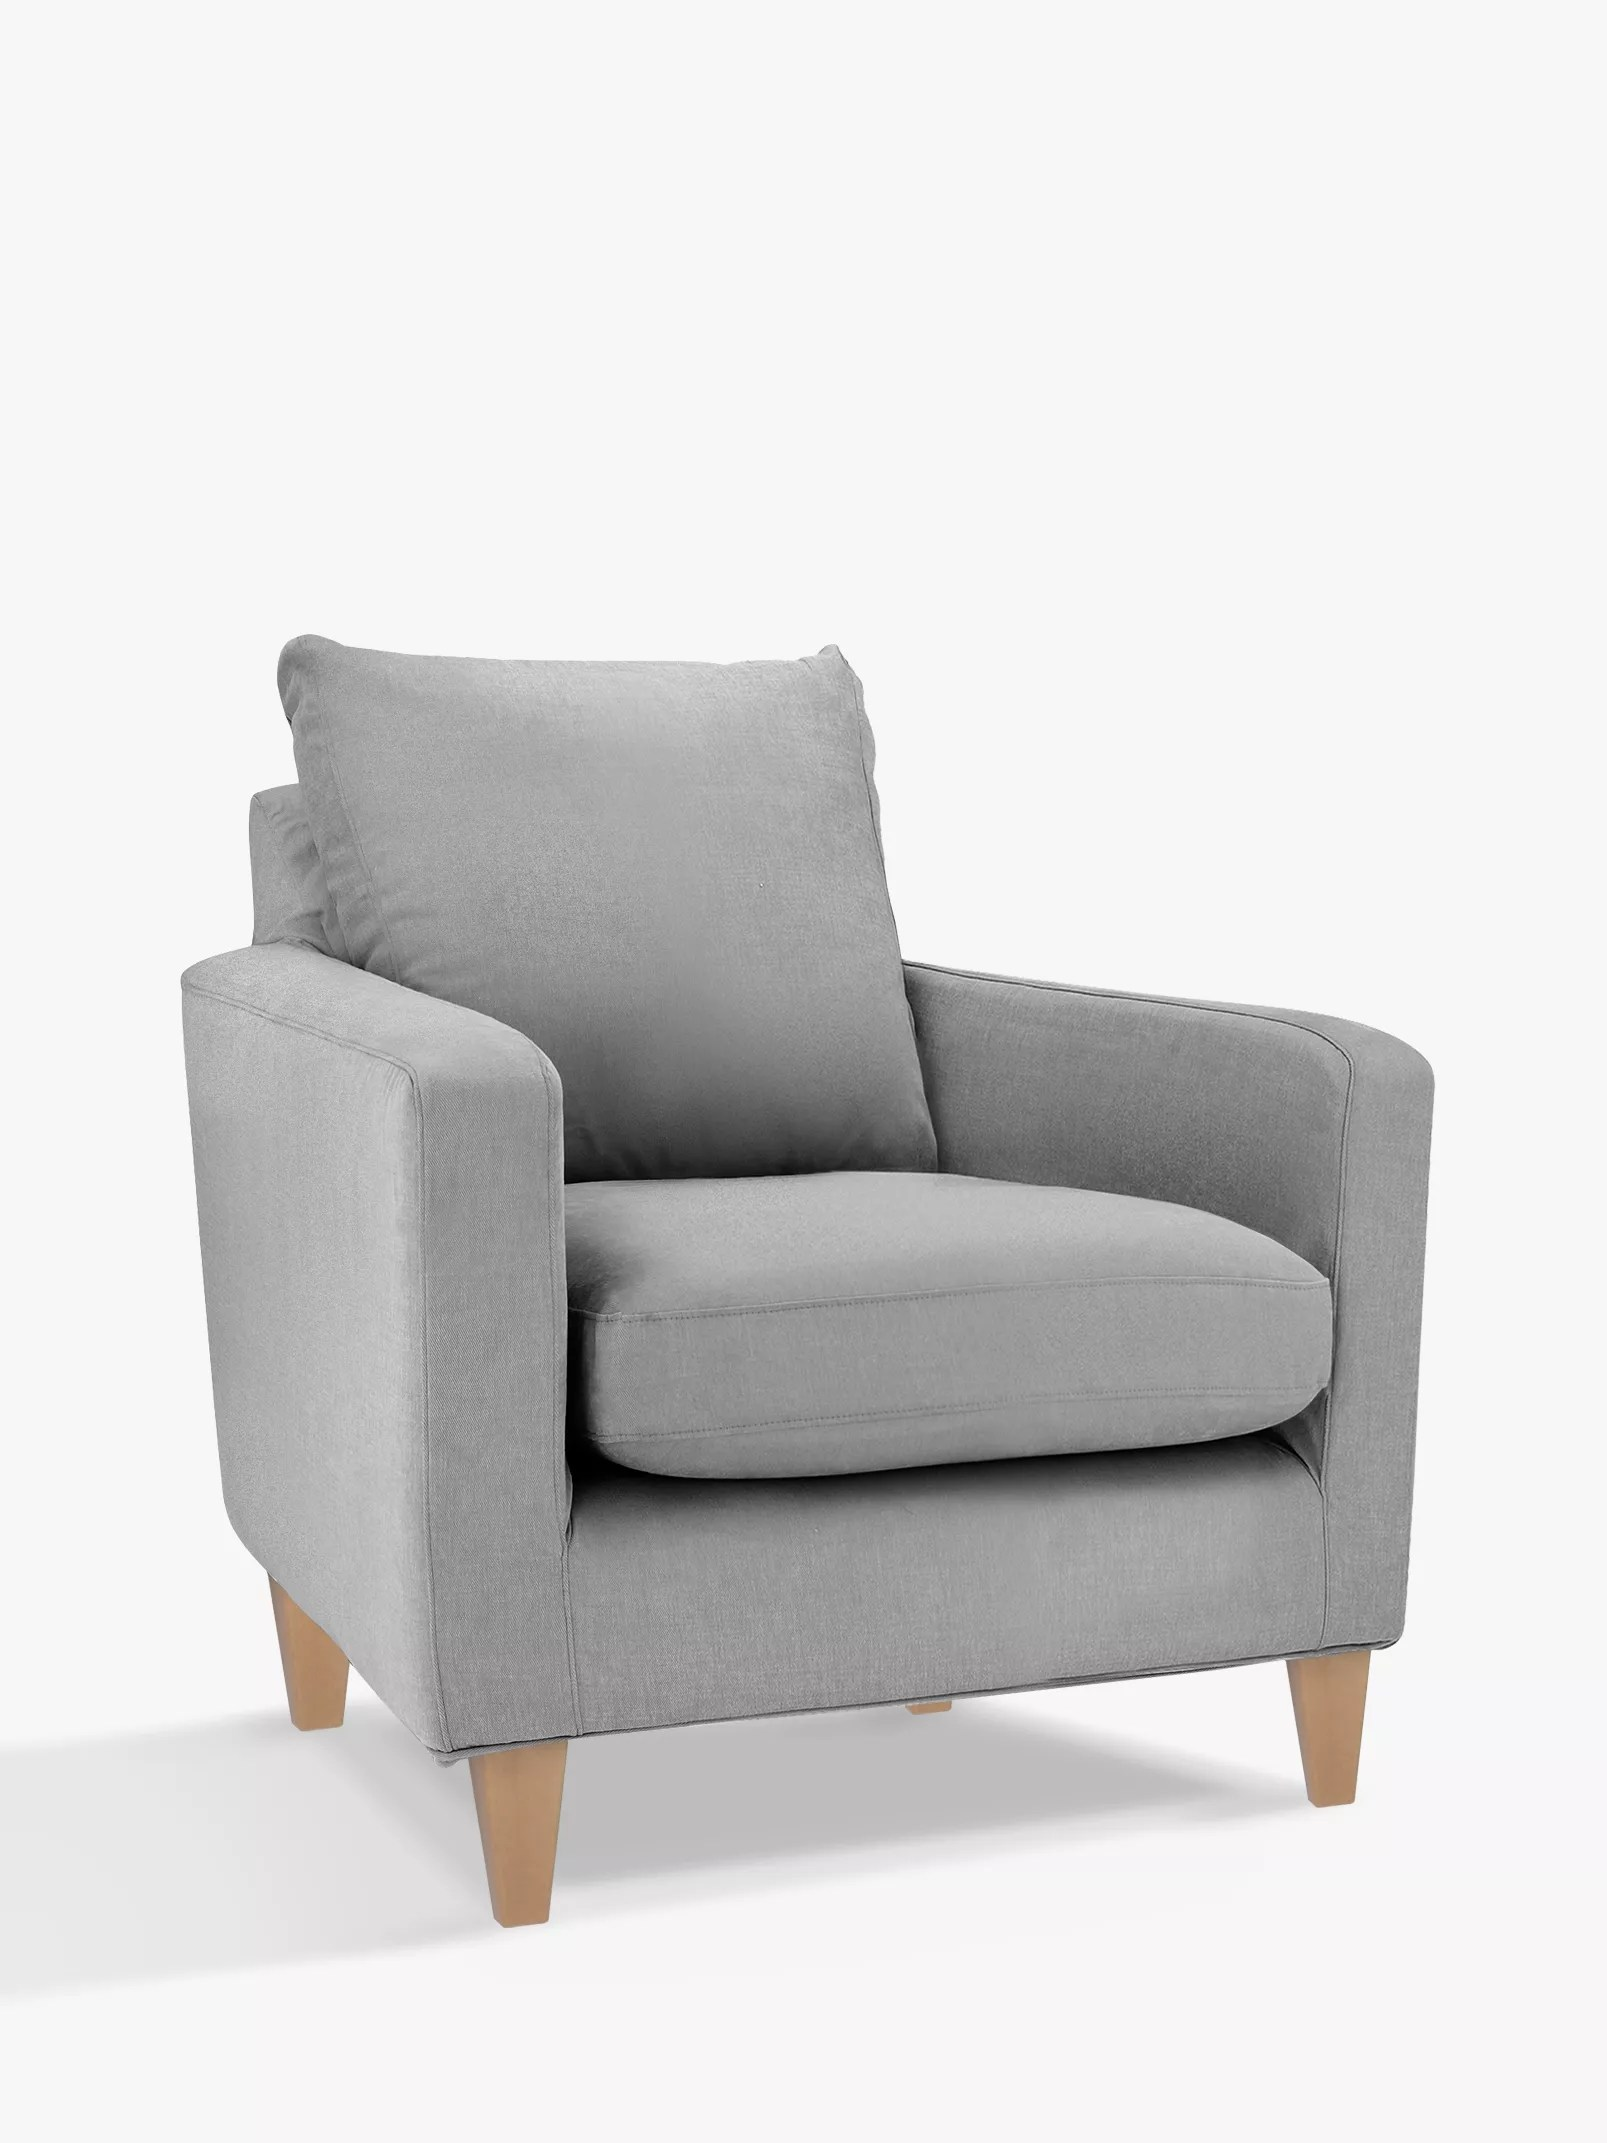 john lewis loose chair covers folding guitar bailey cover light leg newlyn putty at buyjohn online johnlewis